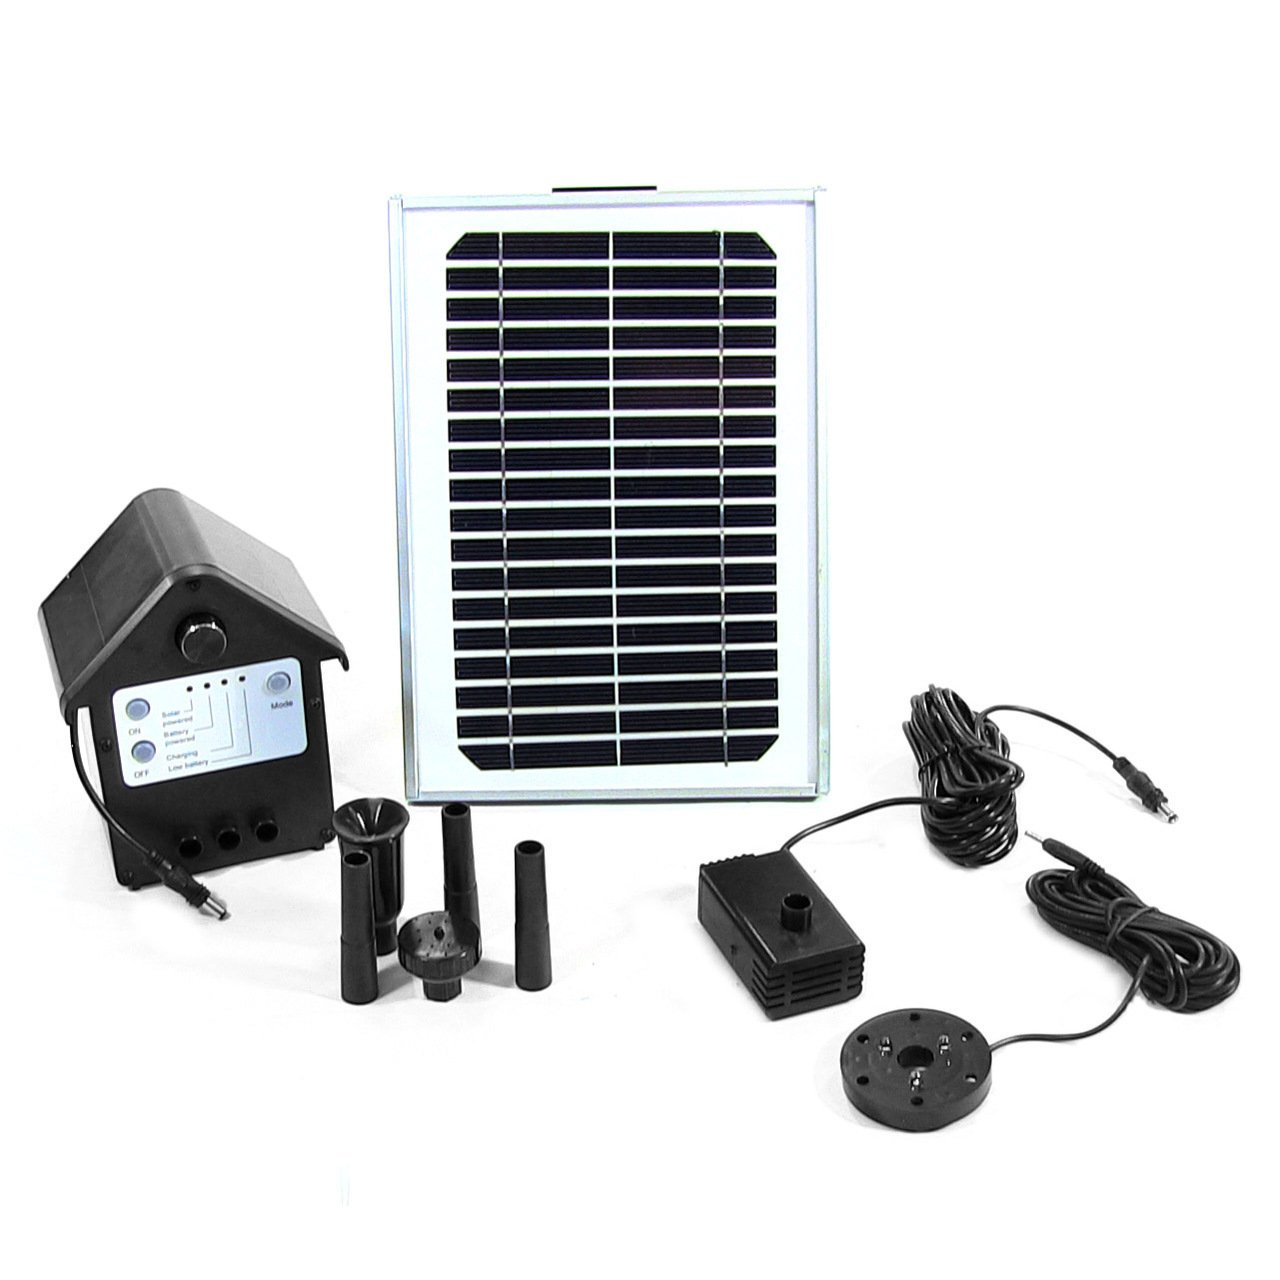 Sunnydaze Solar Pump and Solar Panel Kit With Battery Pack and LED Light, 56 Inch Lift